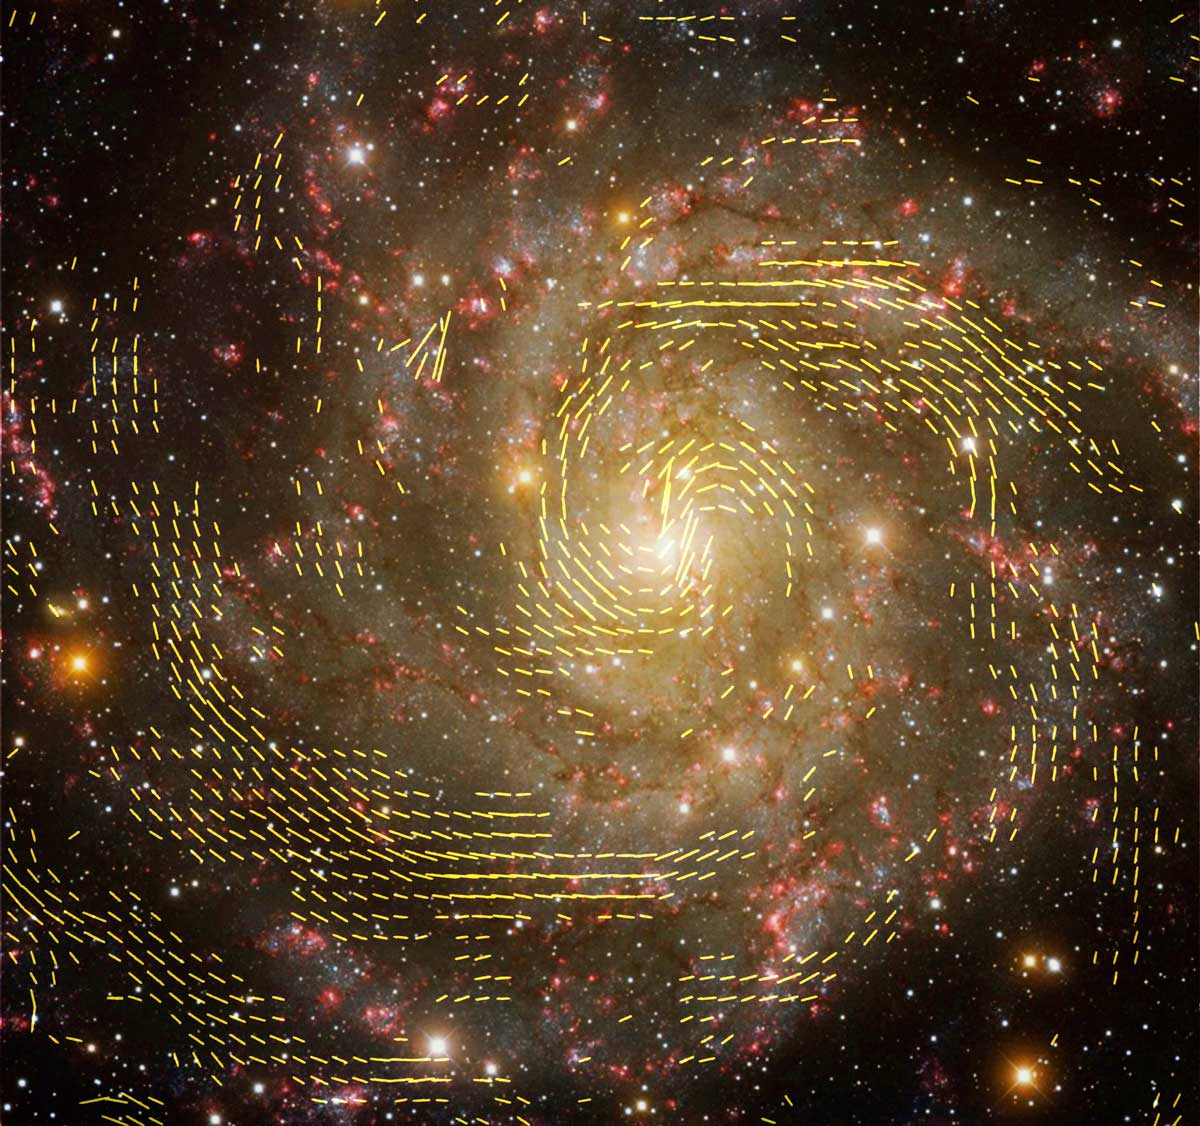 Magnetic-Field Discovery Gives Clues to Galaxy Formation Processes - National Radio Astronomy Observatory